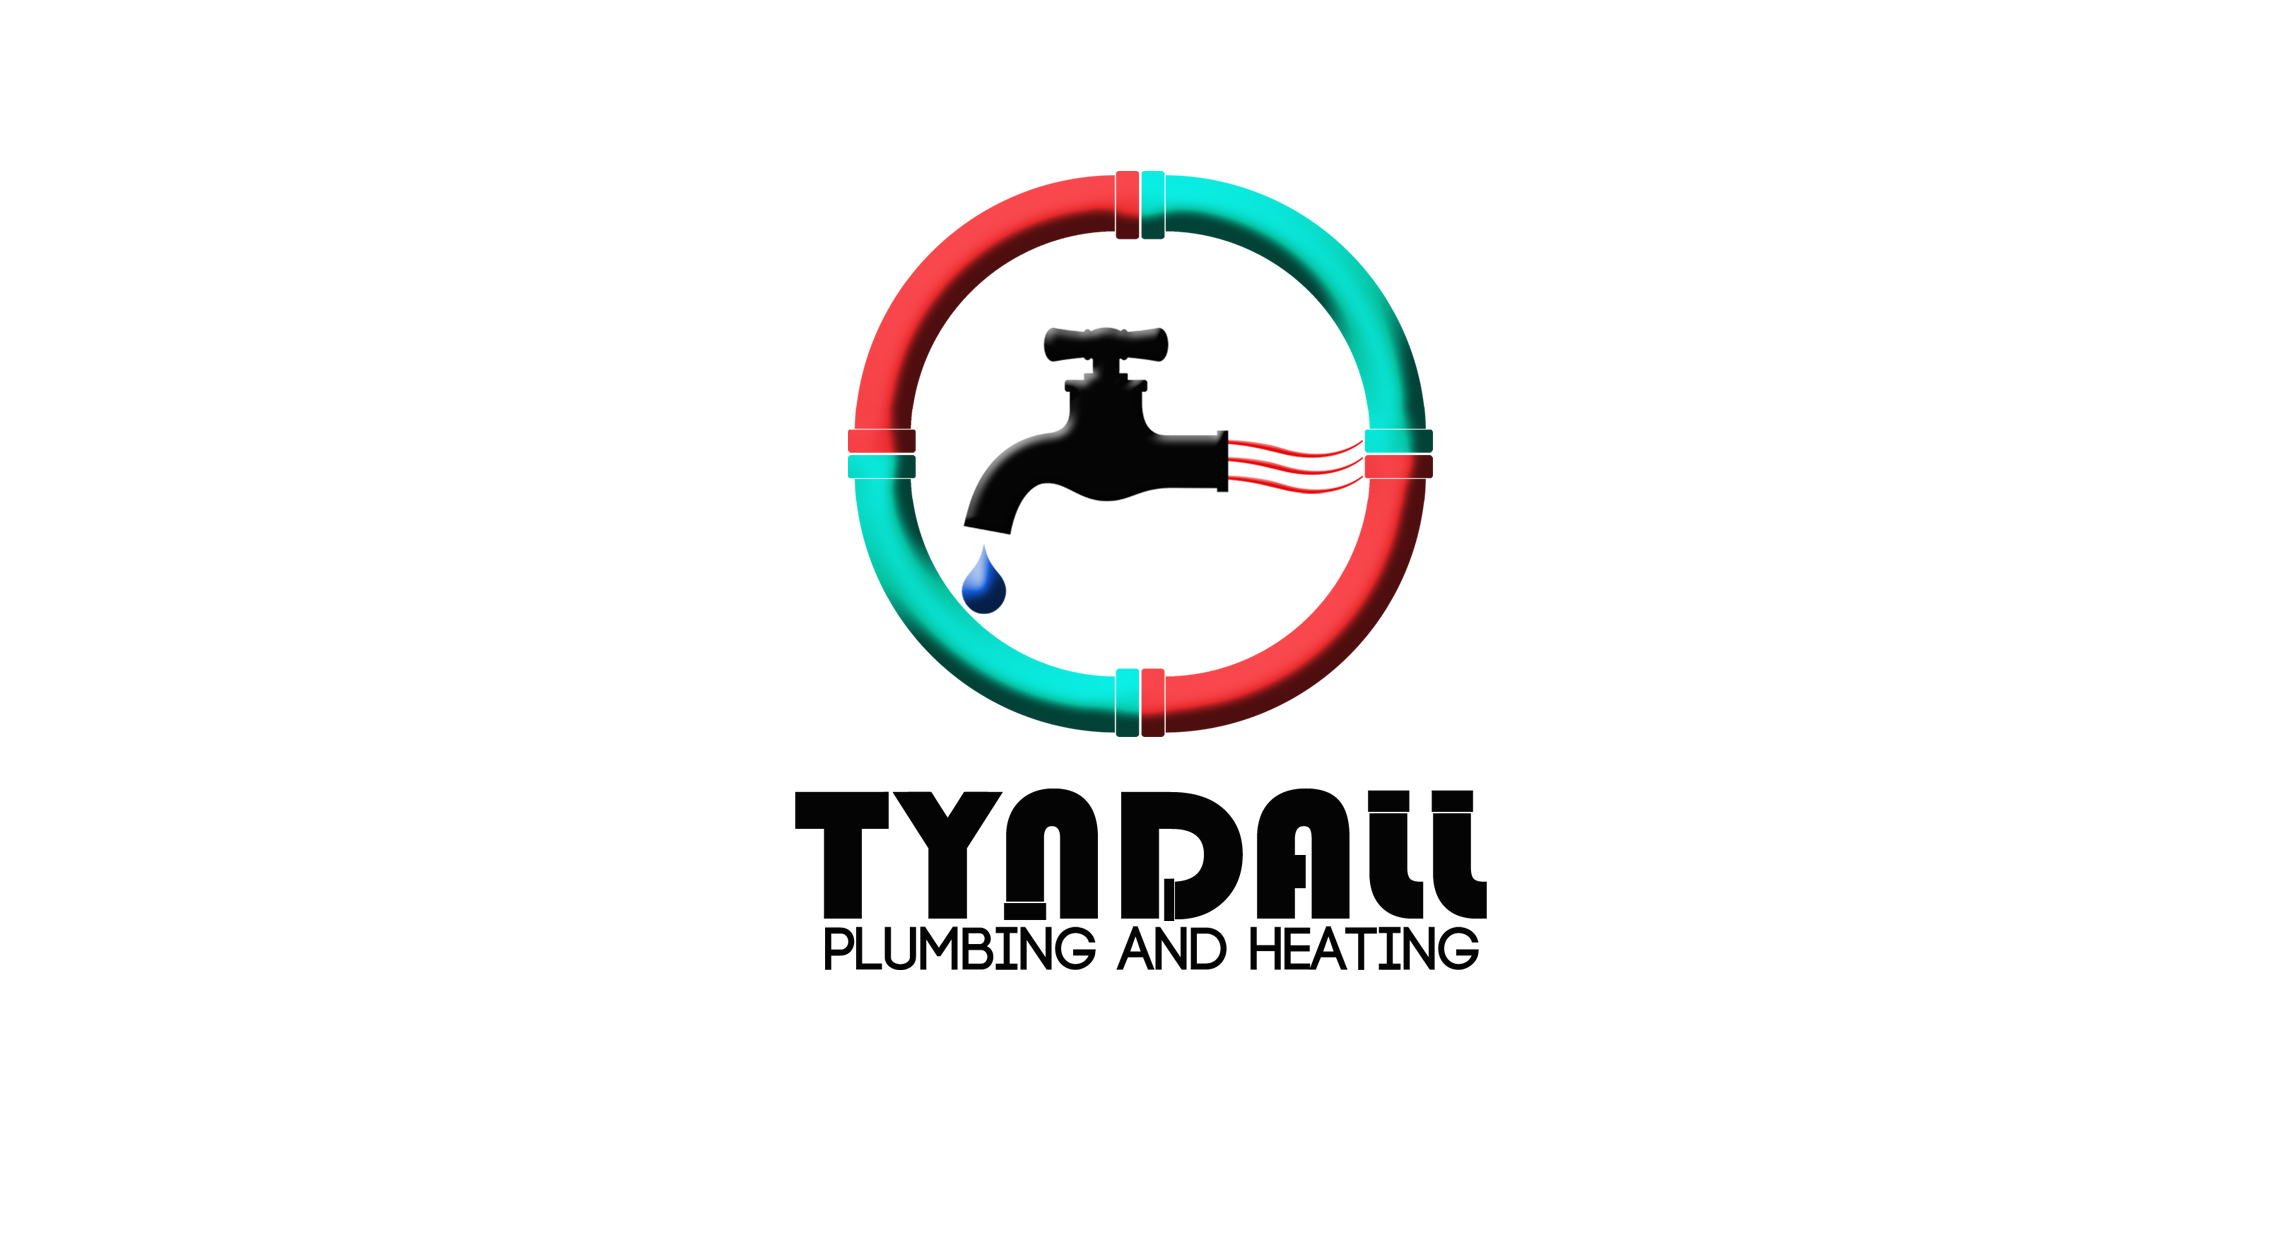 Logo Design by Arqui ACOSTA - Entry No. 50 in the Logo Design Contest Imaginative Logo Design for Tyndall Plumbing & Heating.